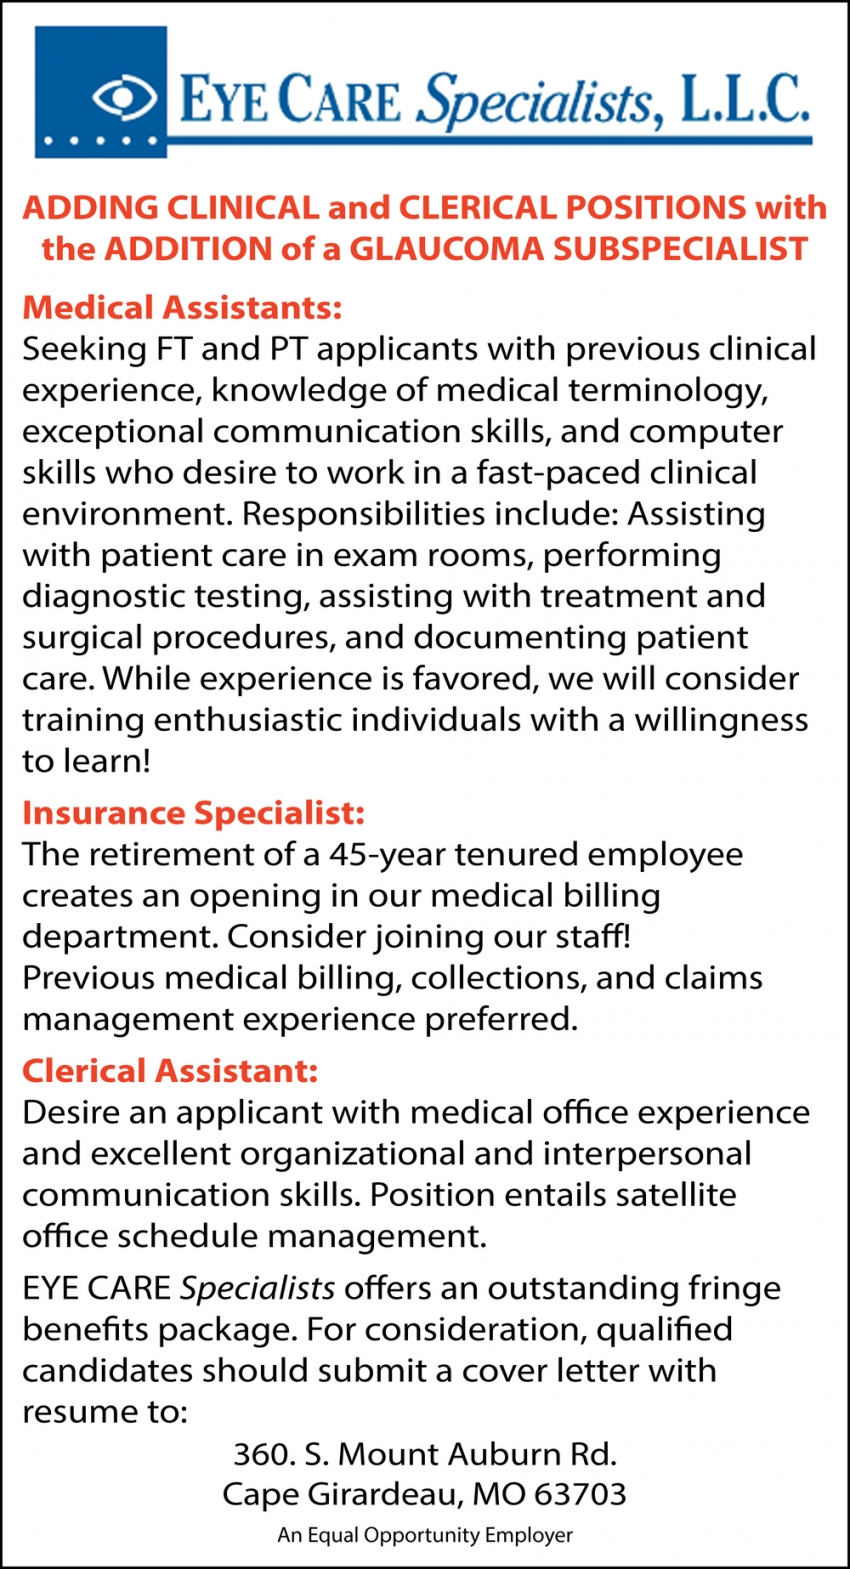 Medical Assistants & Insurance Specialist, Eye Care ...